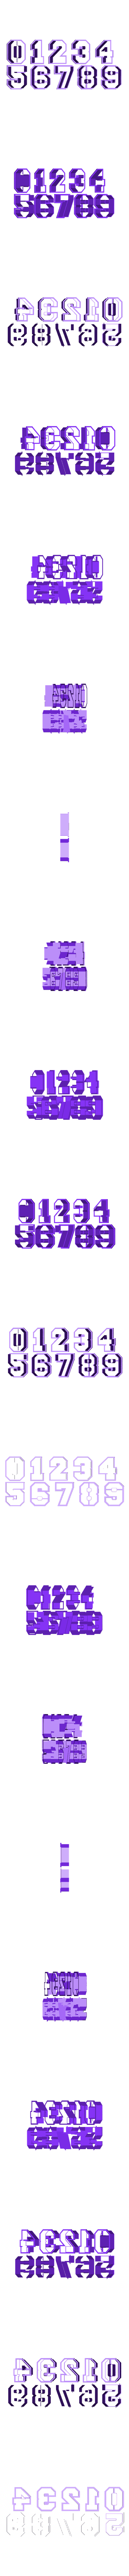 numeros.stl Download free STL file ABC school cookie cutter 2cm • 3D printing object, CutterLabs